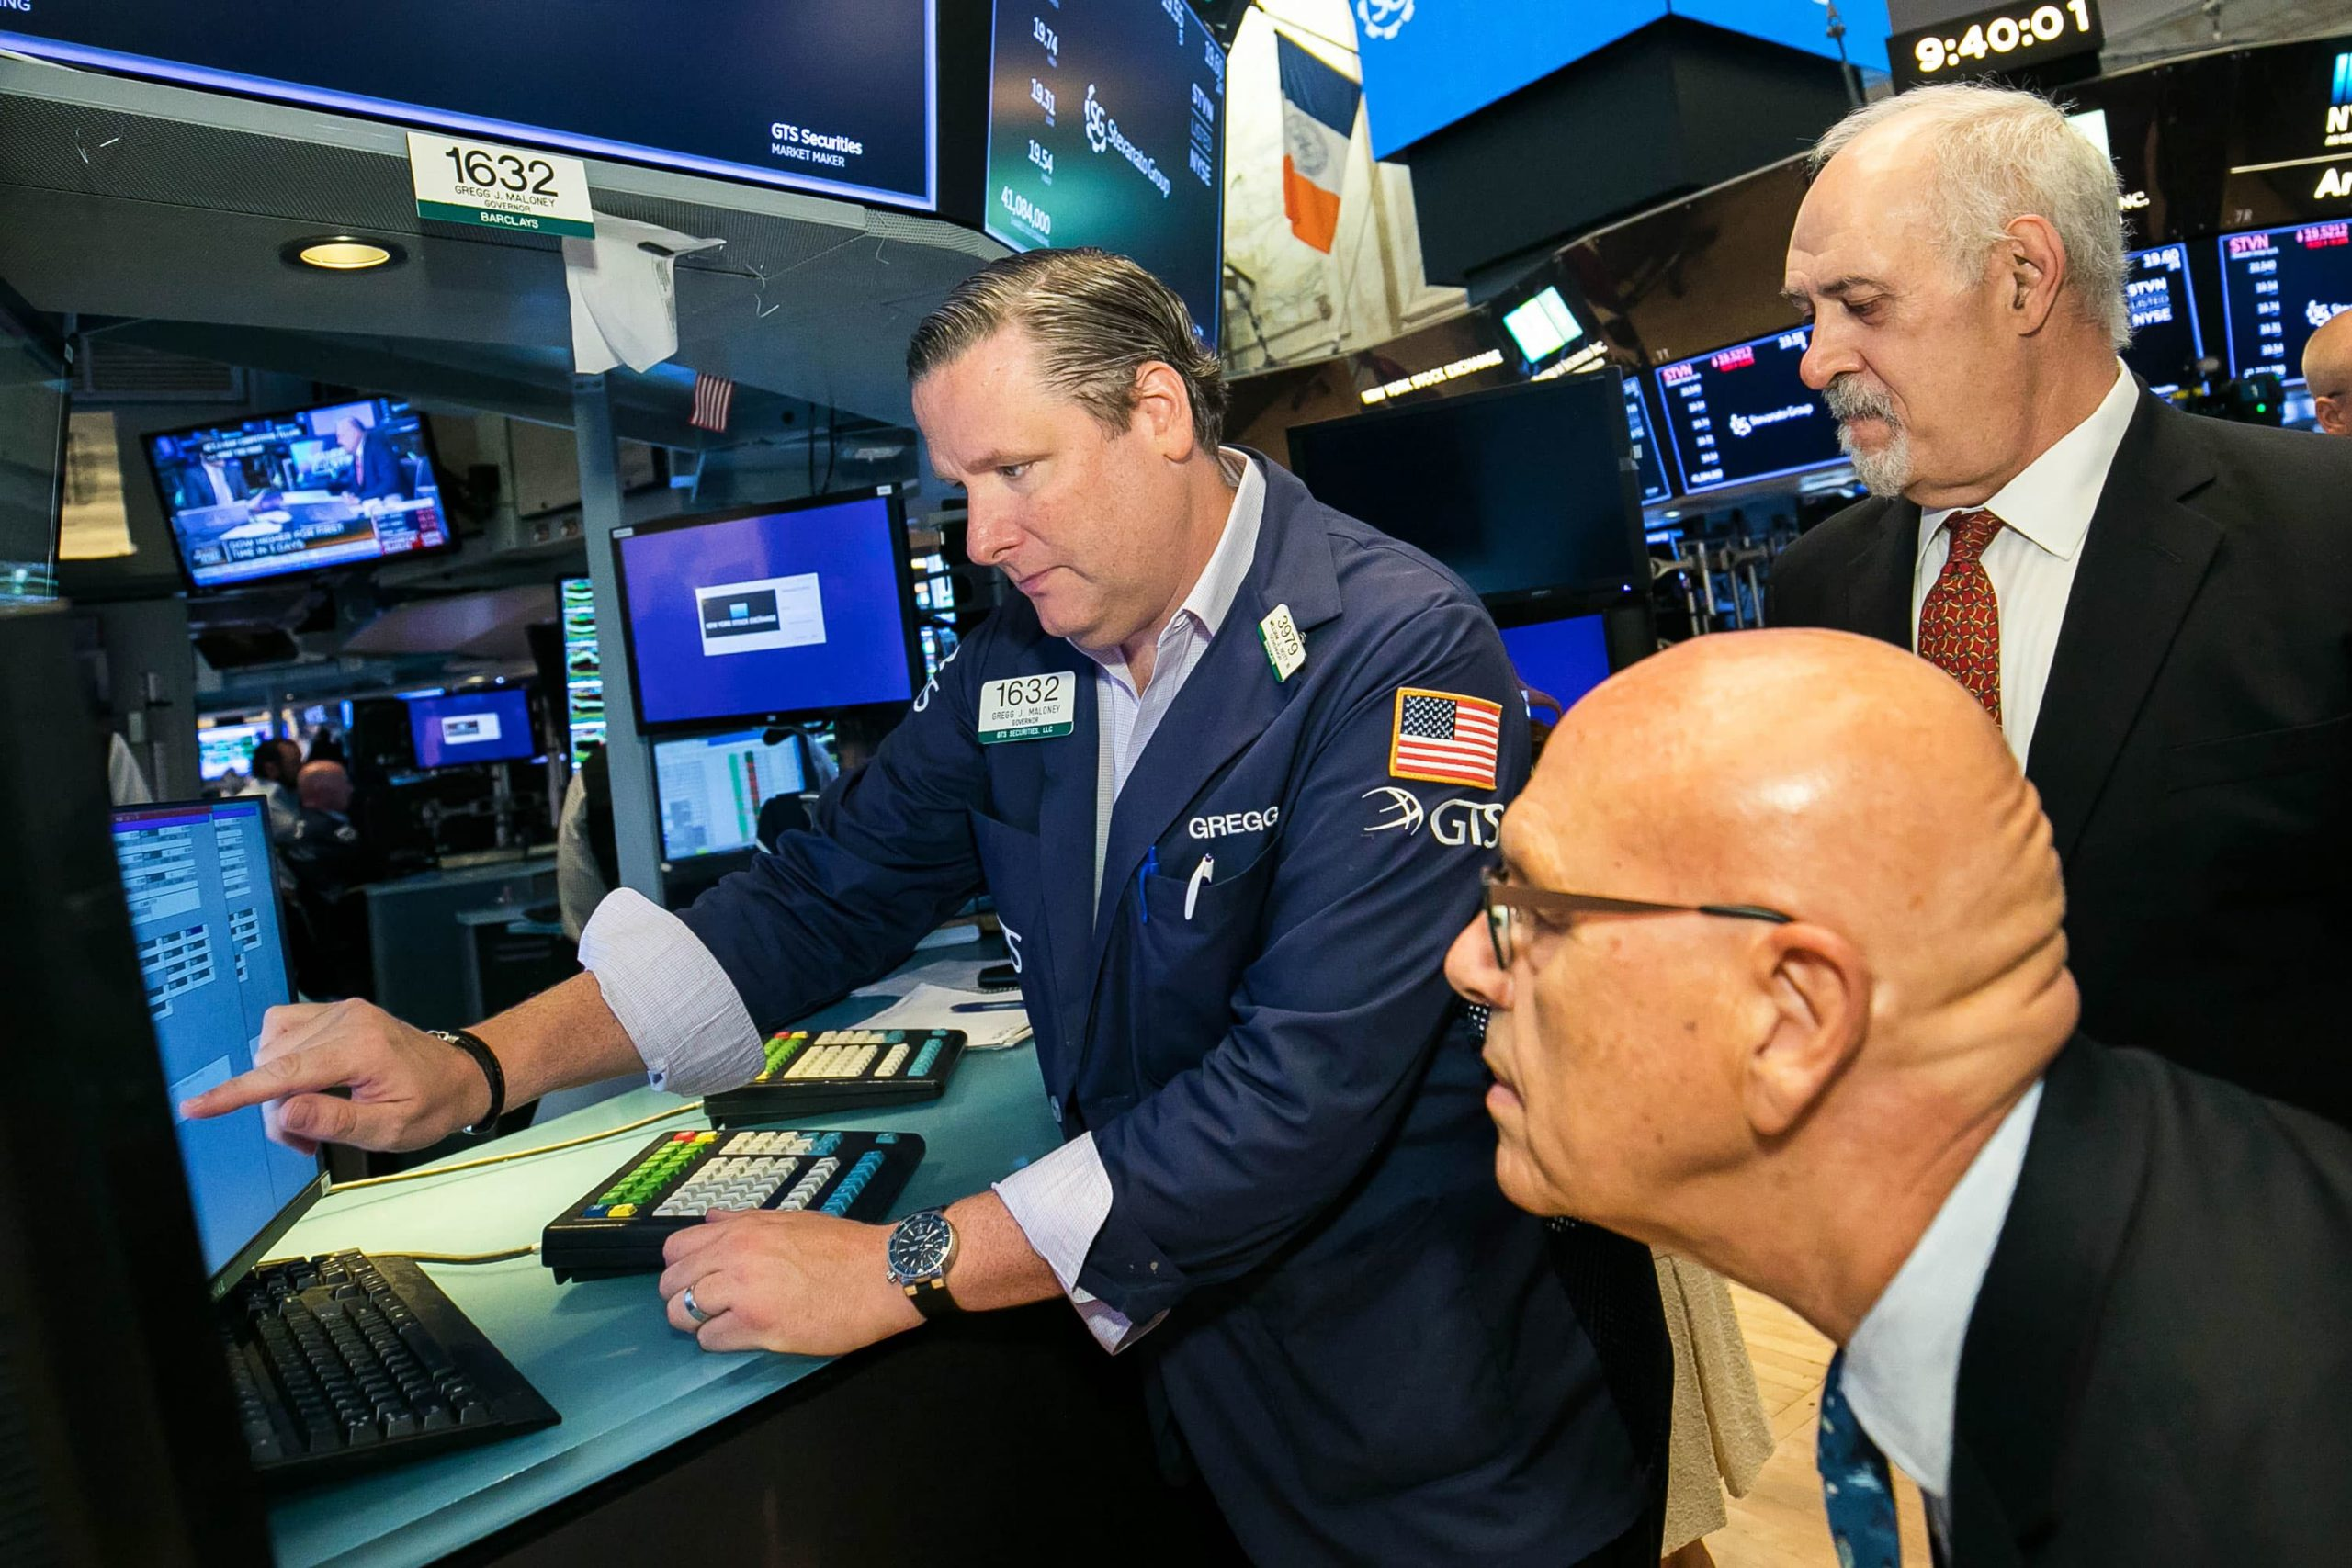 Wall Street tries to keep its rebound rally going